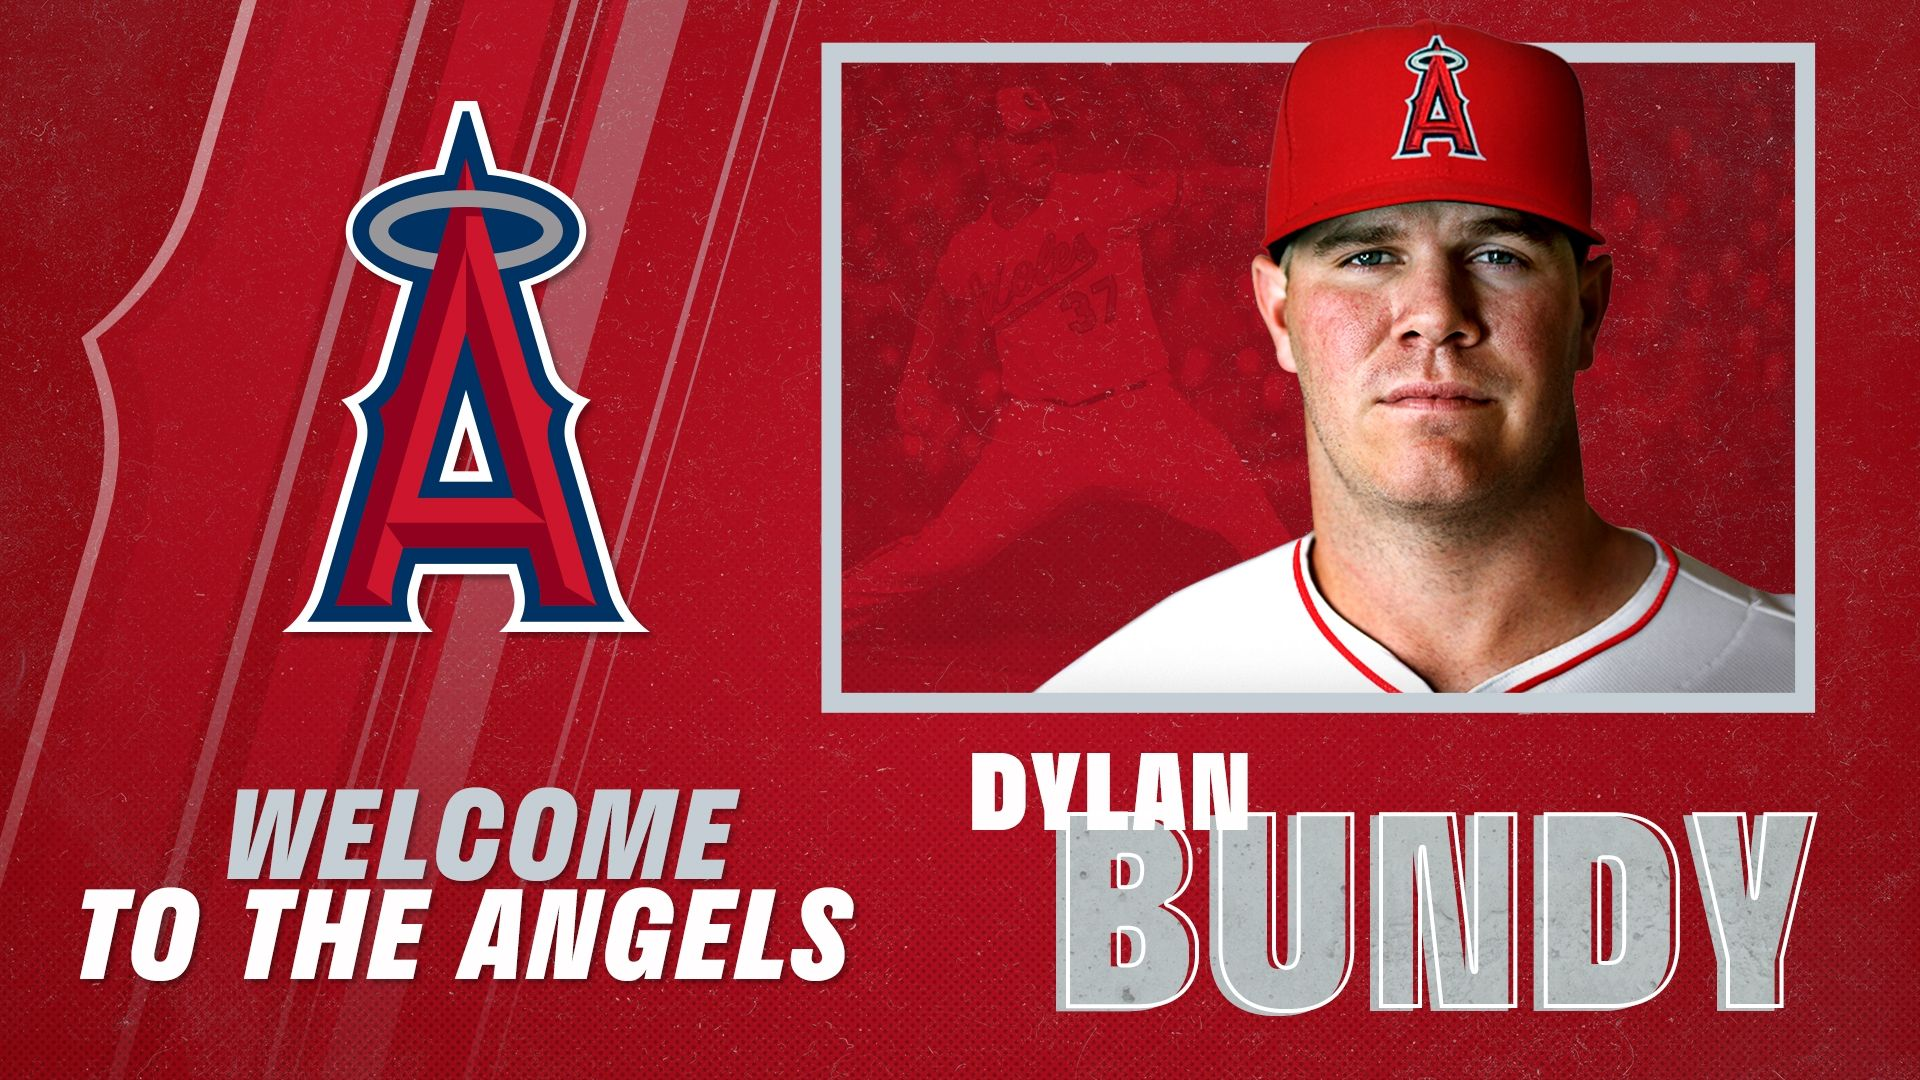 Dylan Bundy  Highlights - Arsenal